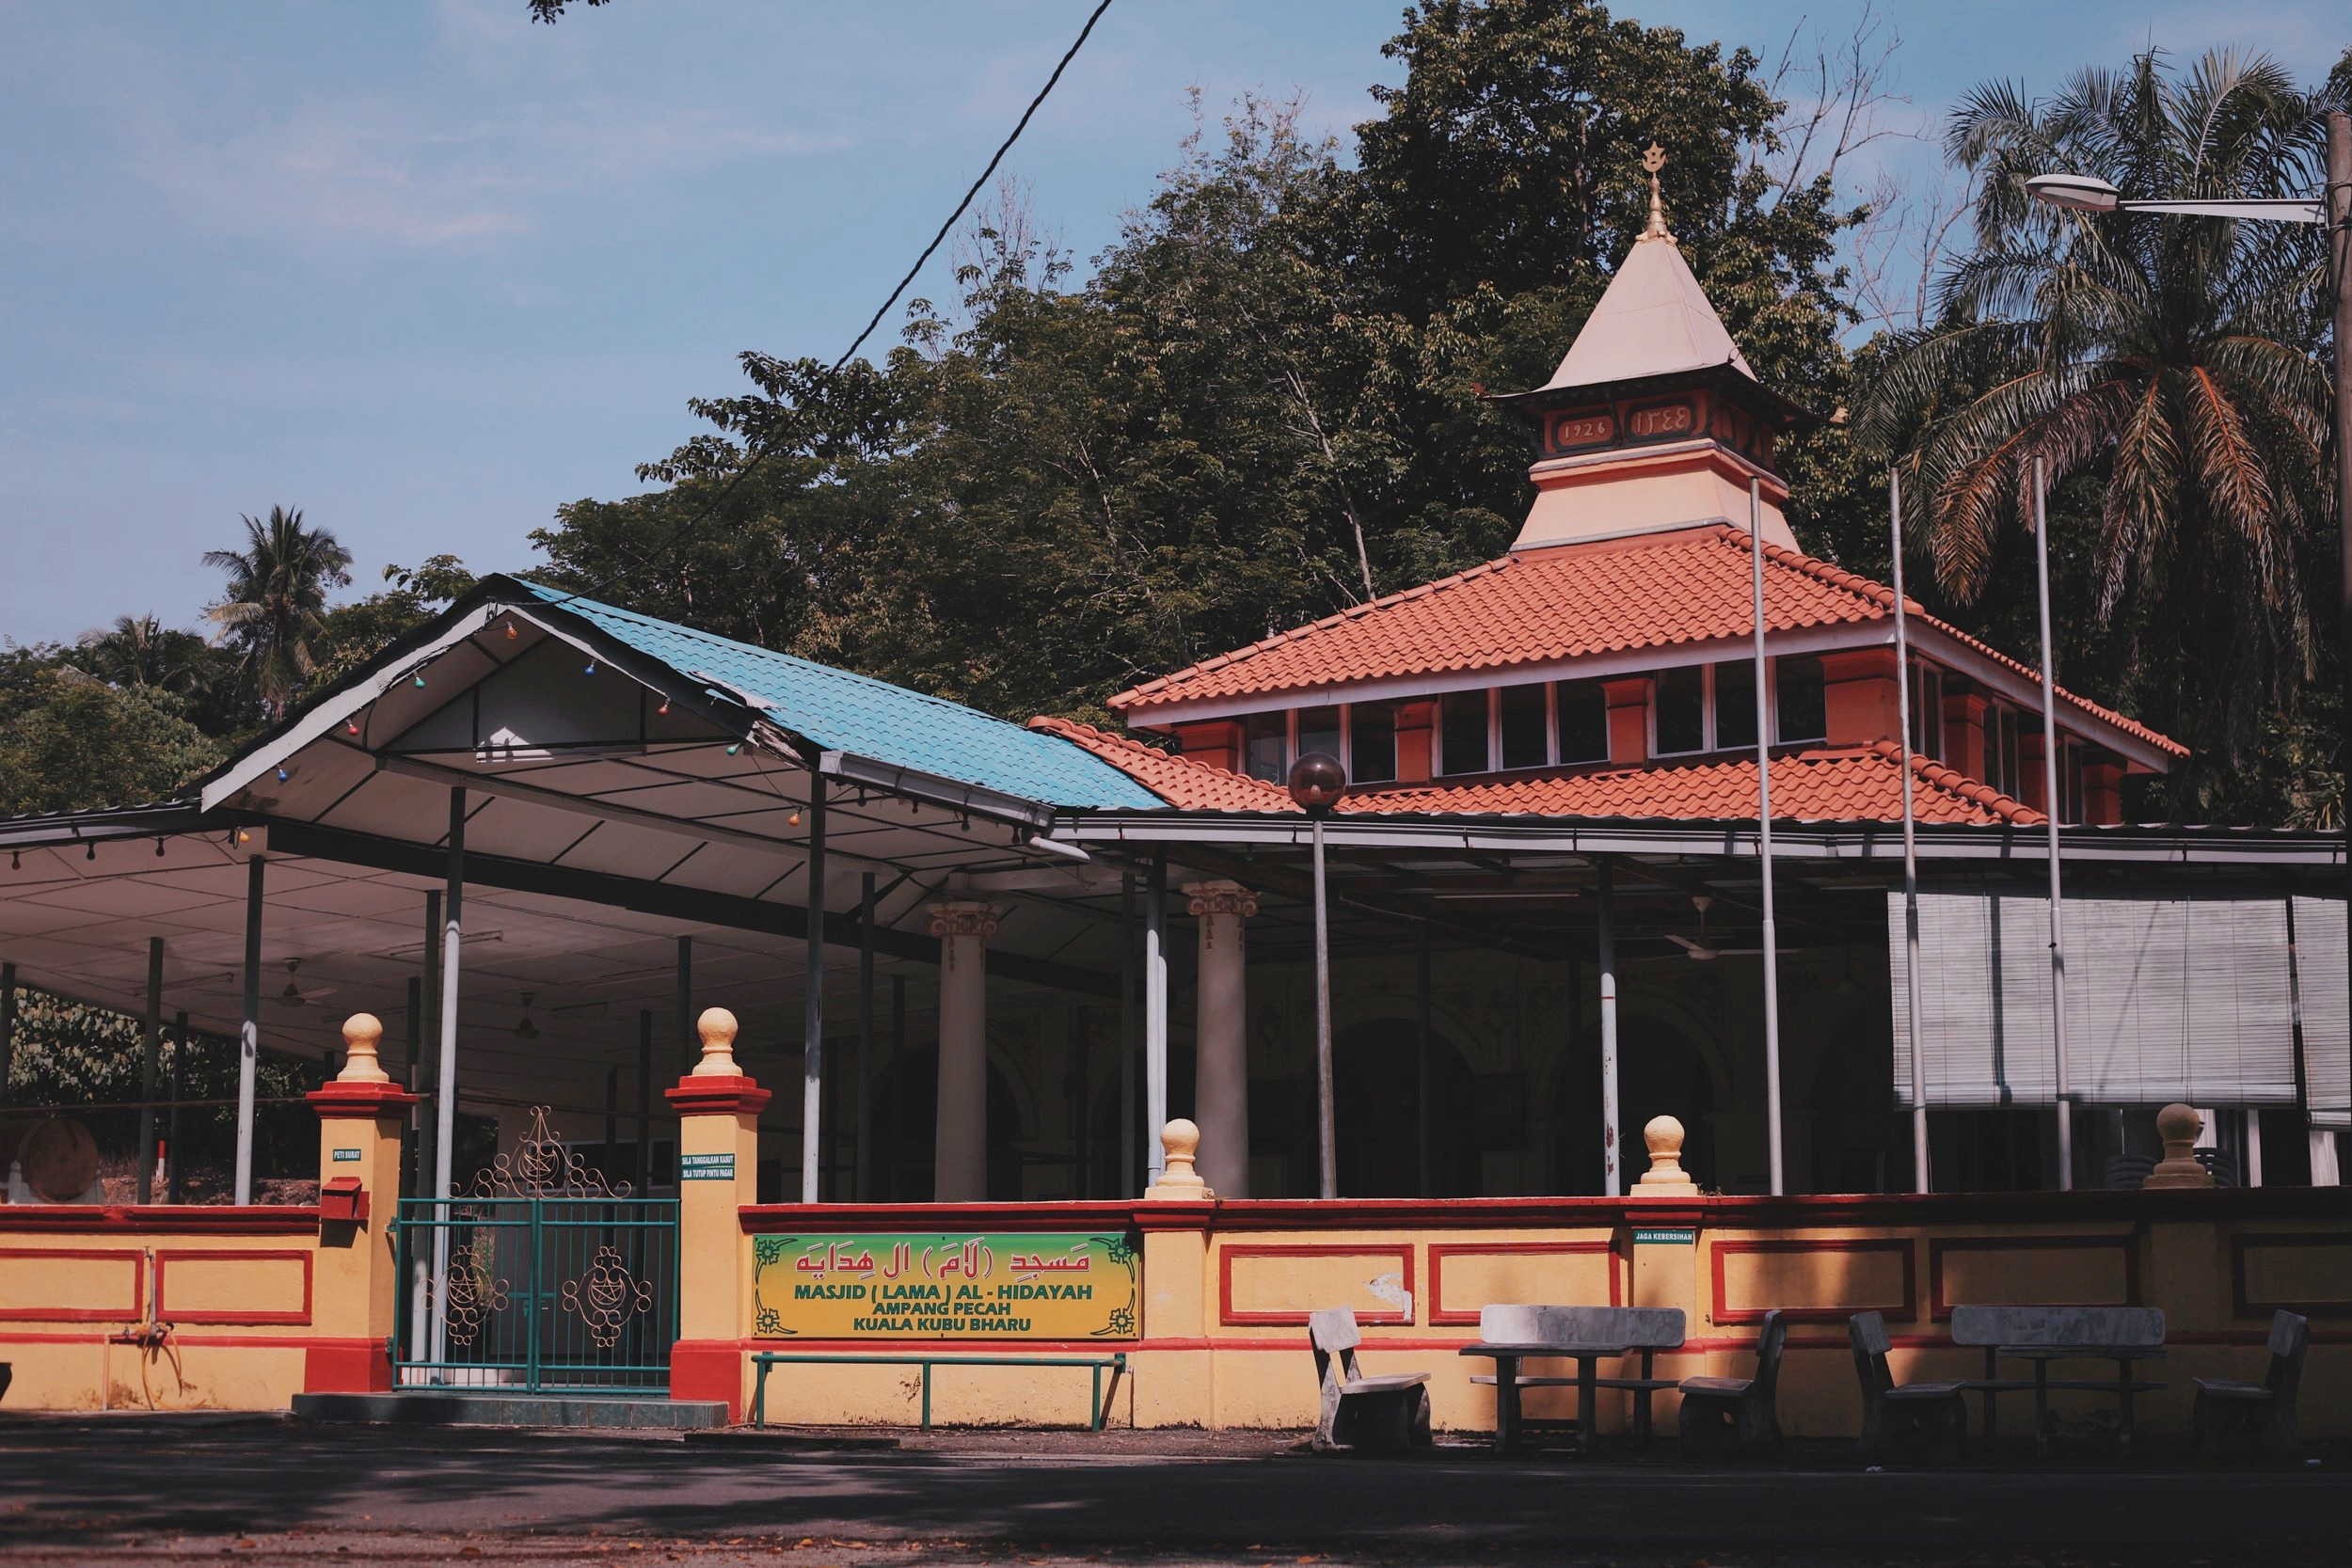 The Mosque which marked the rebuilt town of Kuala Kubu after the tragedy